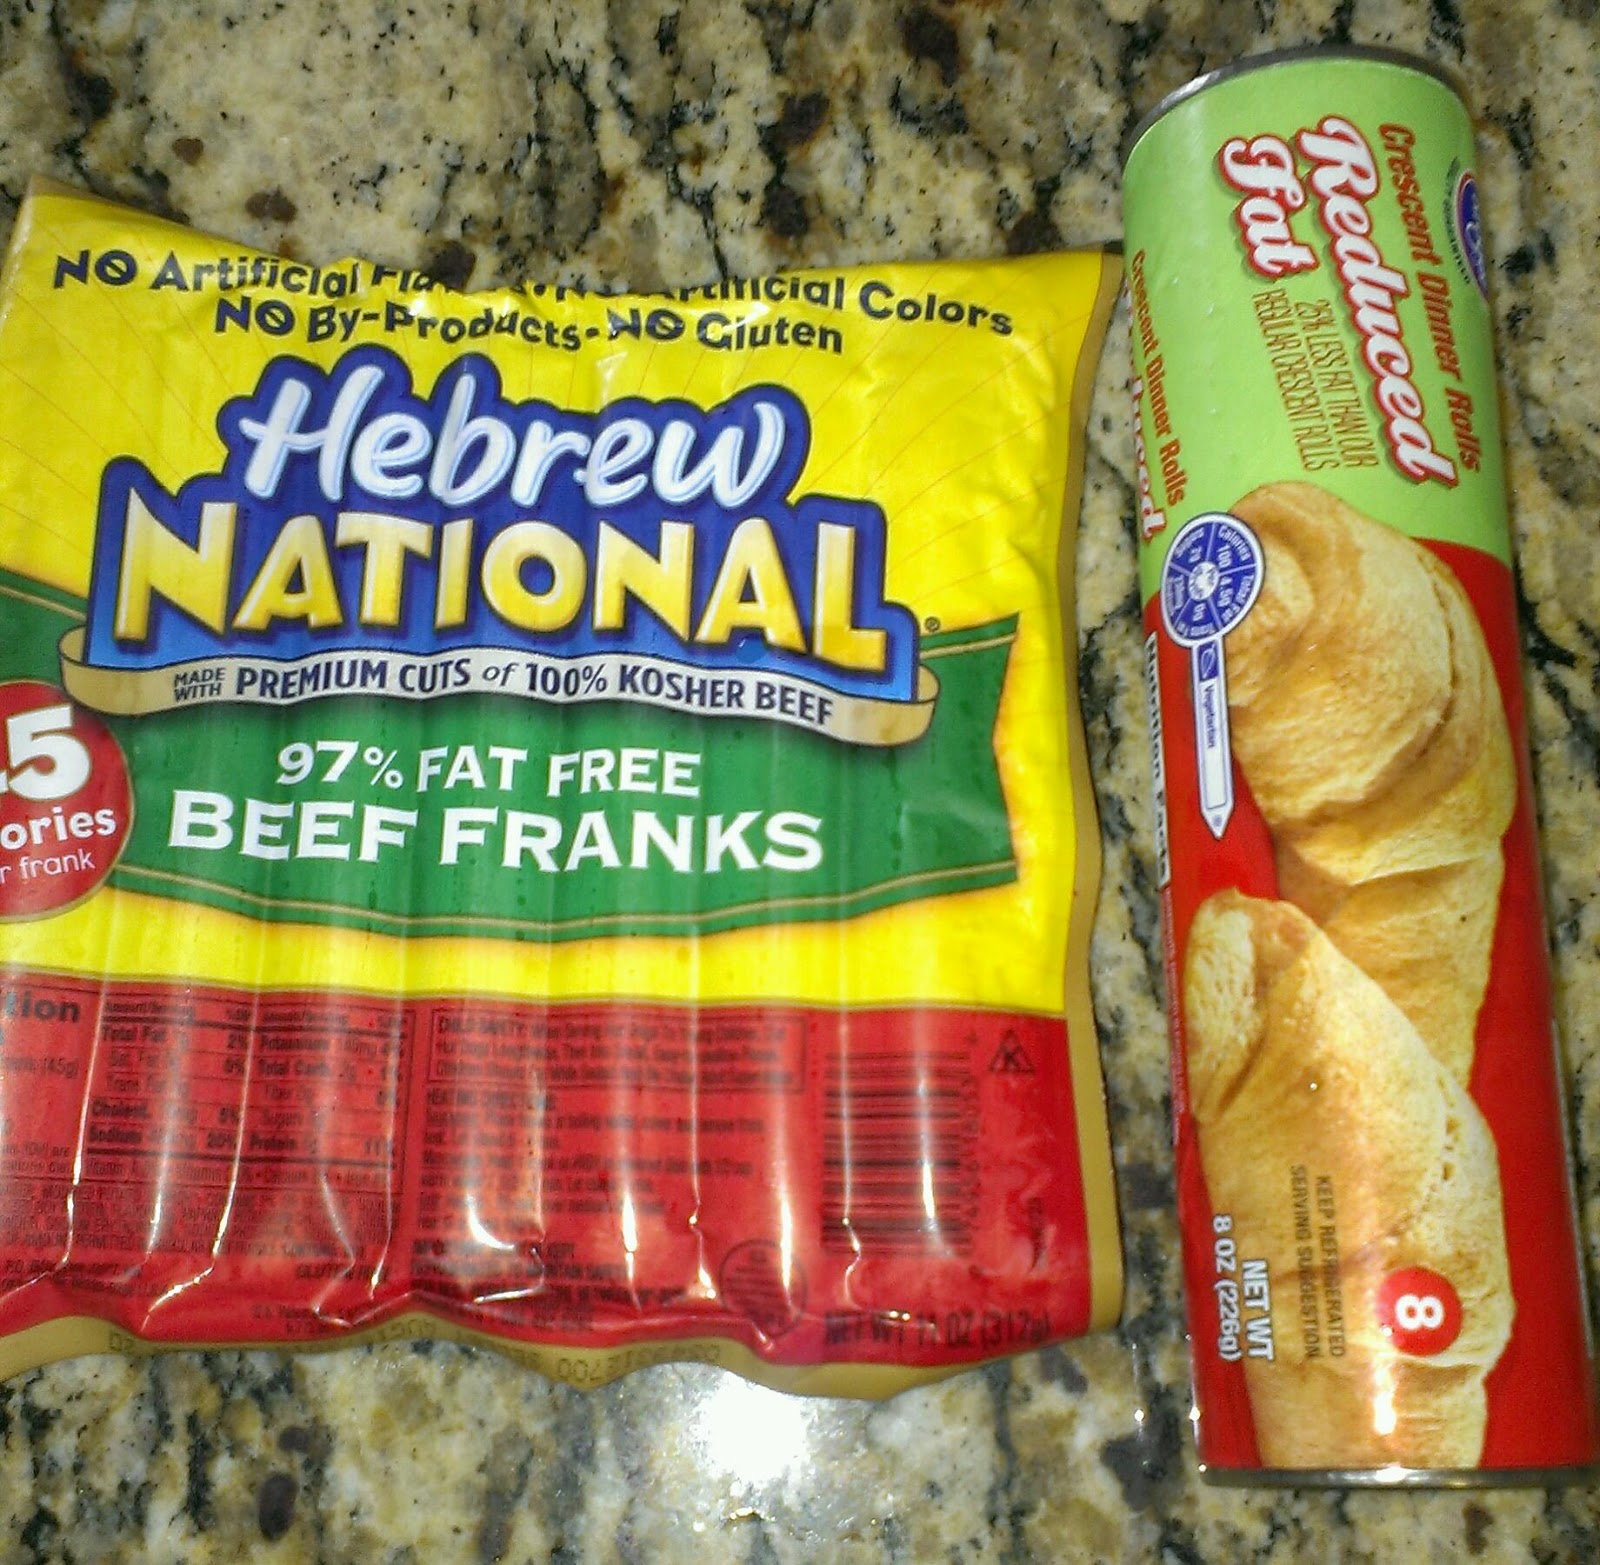 Hebrew National Hot Dogs Grams Fat